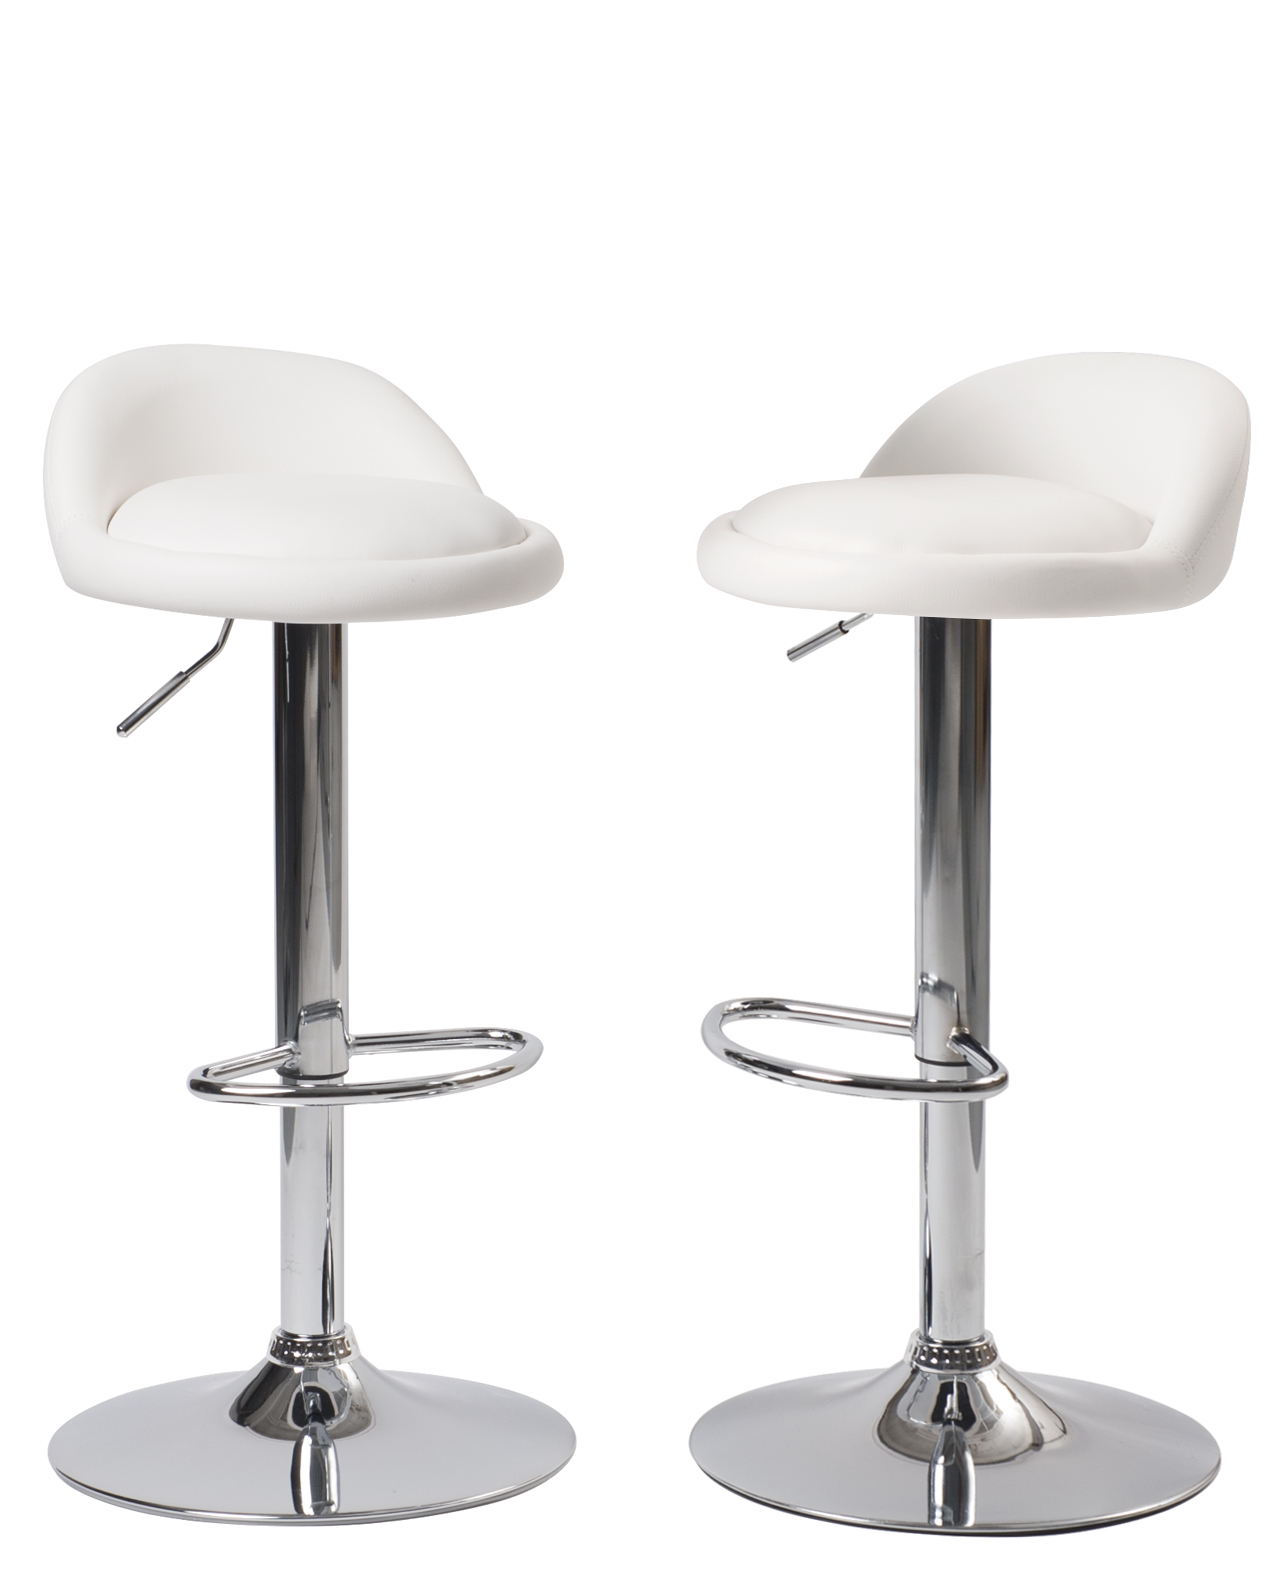 Lot Tabouret De Bar.Sati Lot De 2 Tabourets De Bar Pu Et Chrome